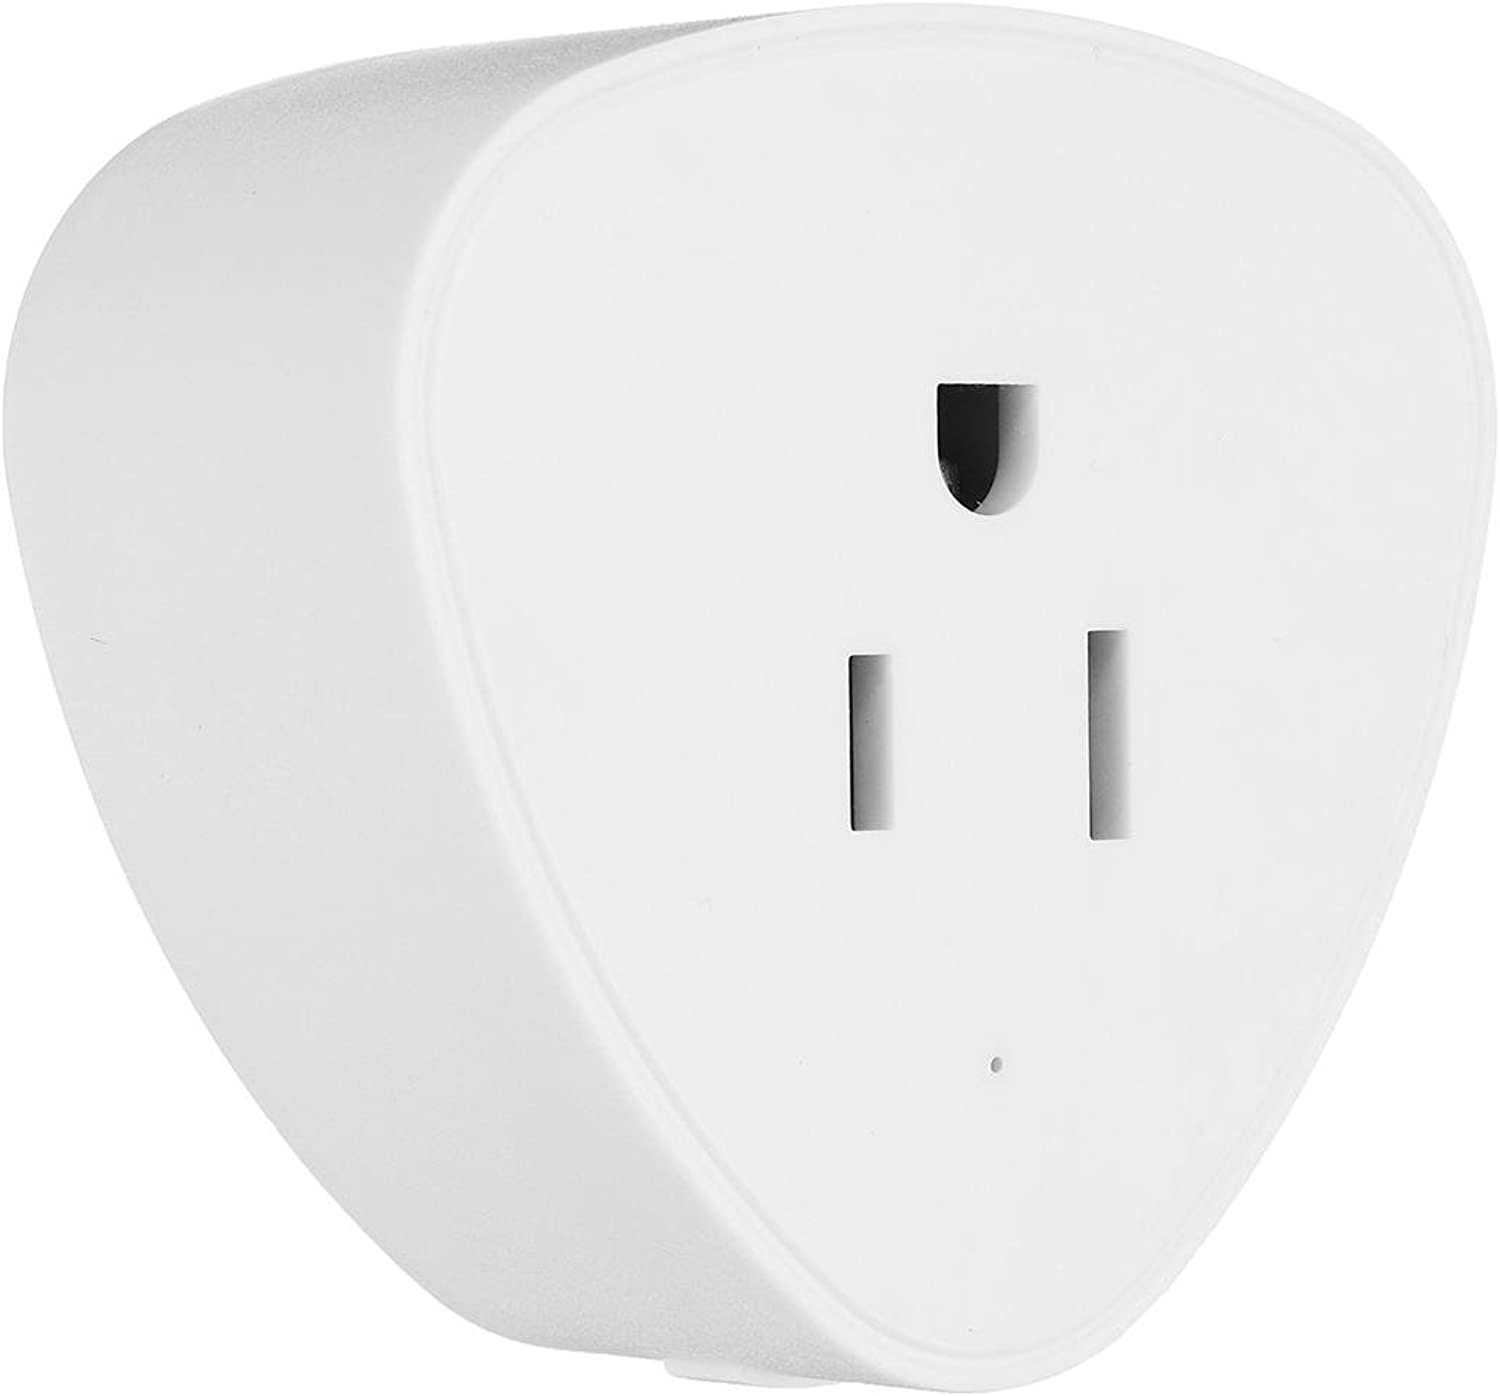 220V 10A Wireless Mini Switch Remote Control Timer Outlet US WiFi Smart Plug Smart WiFi Socket  Tools & Home Improvement Switches & Sockets  1x WiFi Smart Socket